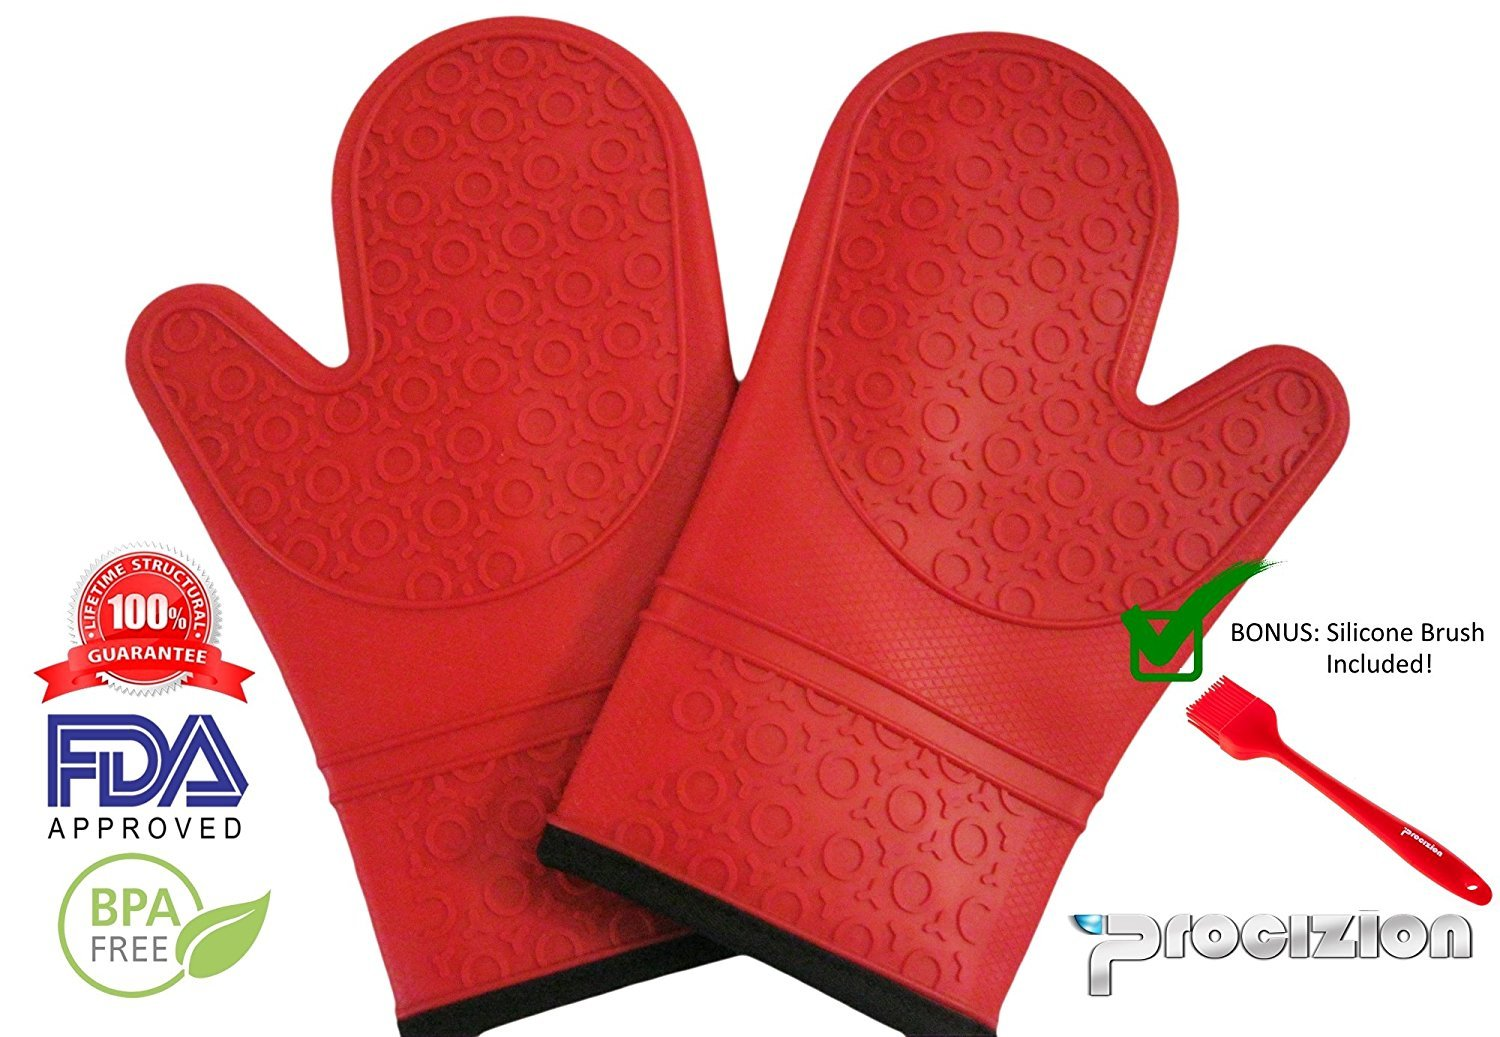 Professional Silicone Oven Mitts - 1 Pair - Red - Heavy Duty - Non-Slip